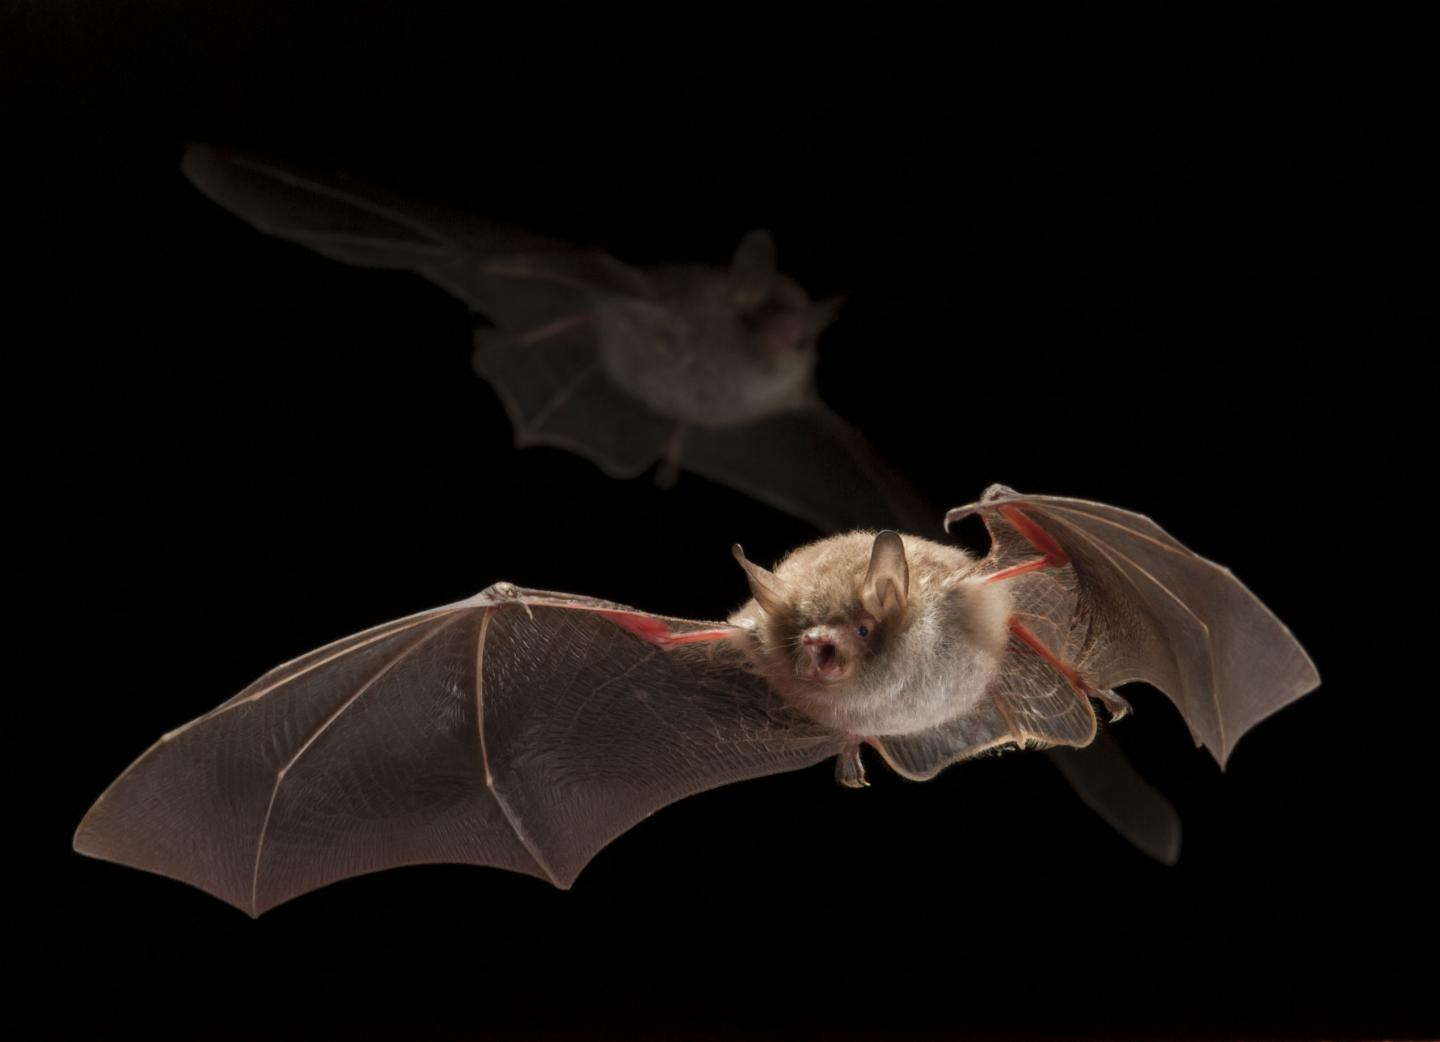 Light-shy Bats are Influenced by Light